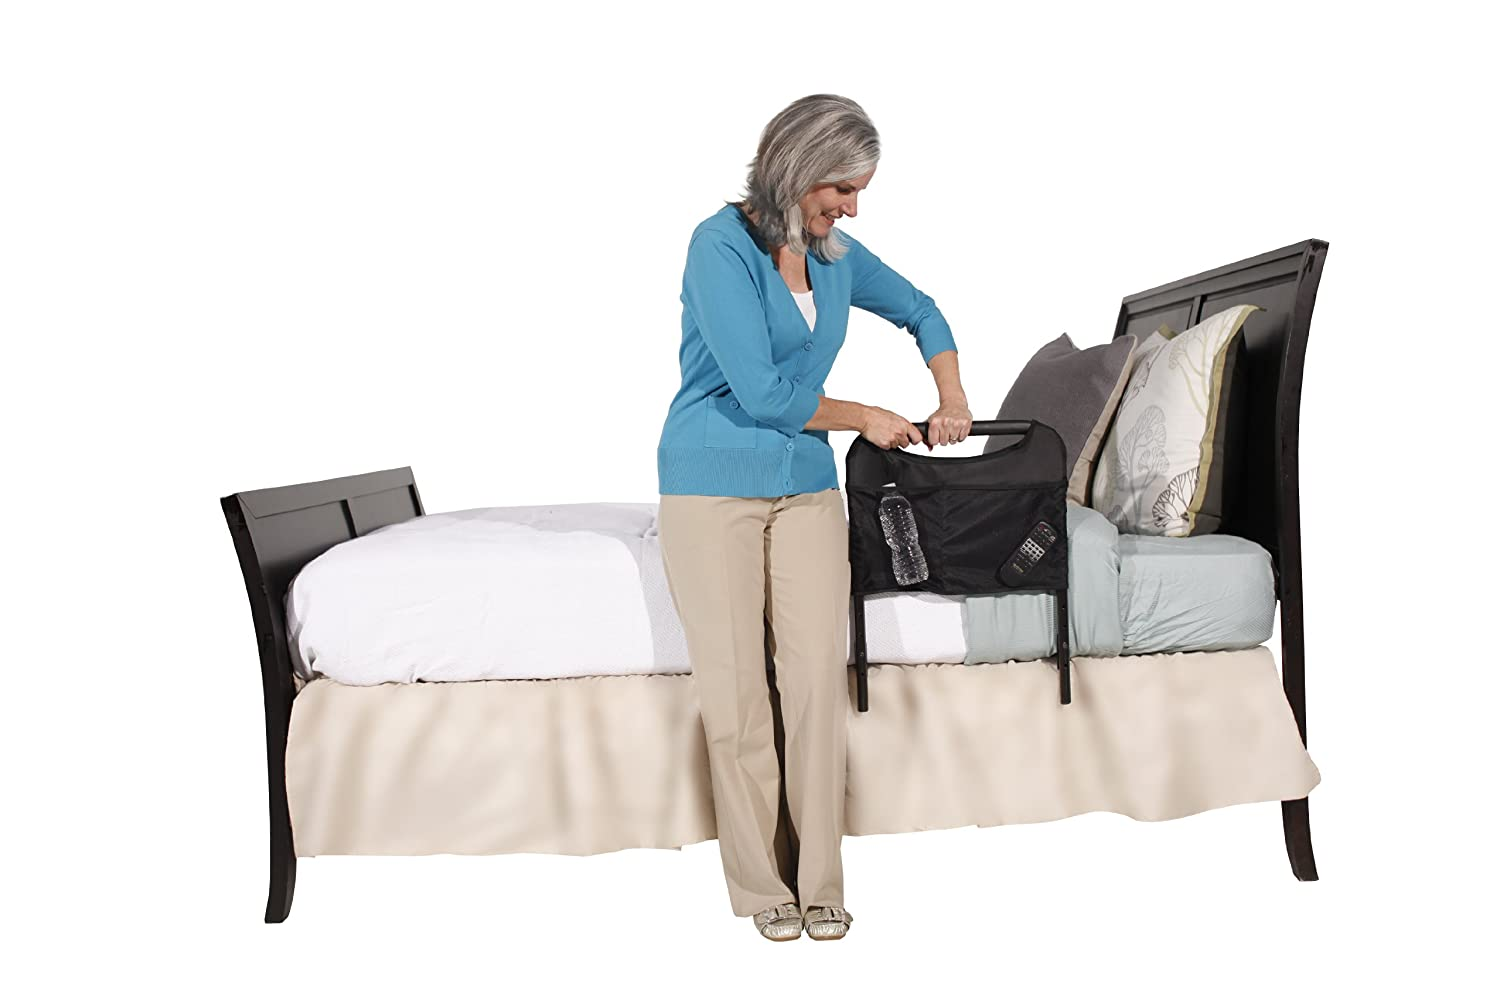 Amazon.com: Able Life Home Bedside Safety Handle - Adjustable ...